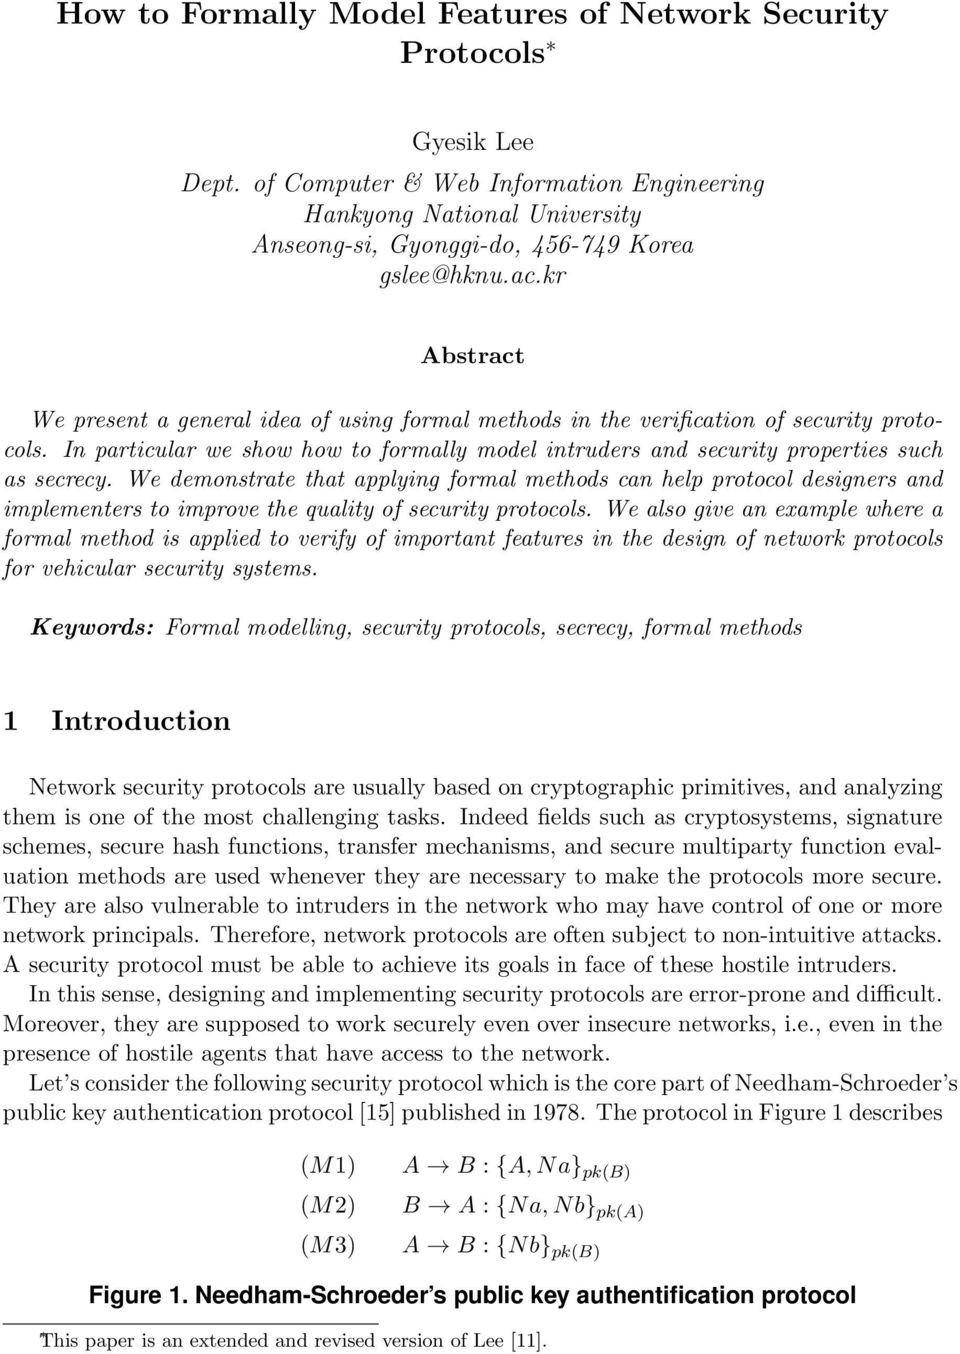 kr Abstract We present a general idea of using formal methods in the verification of security protocols. In particular we show how to formally model intruders and security properties such as secrecy.